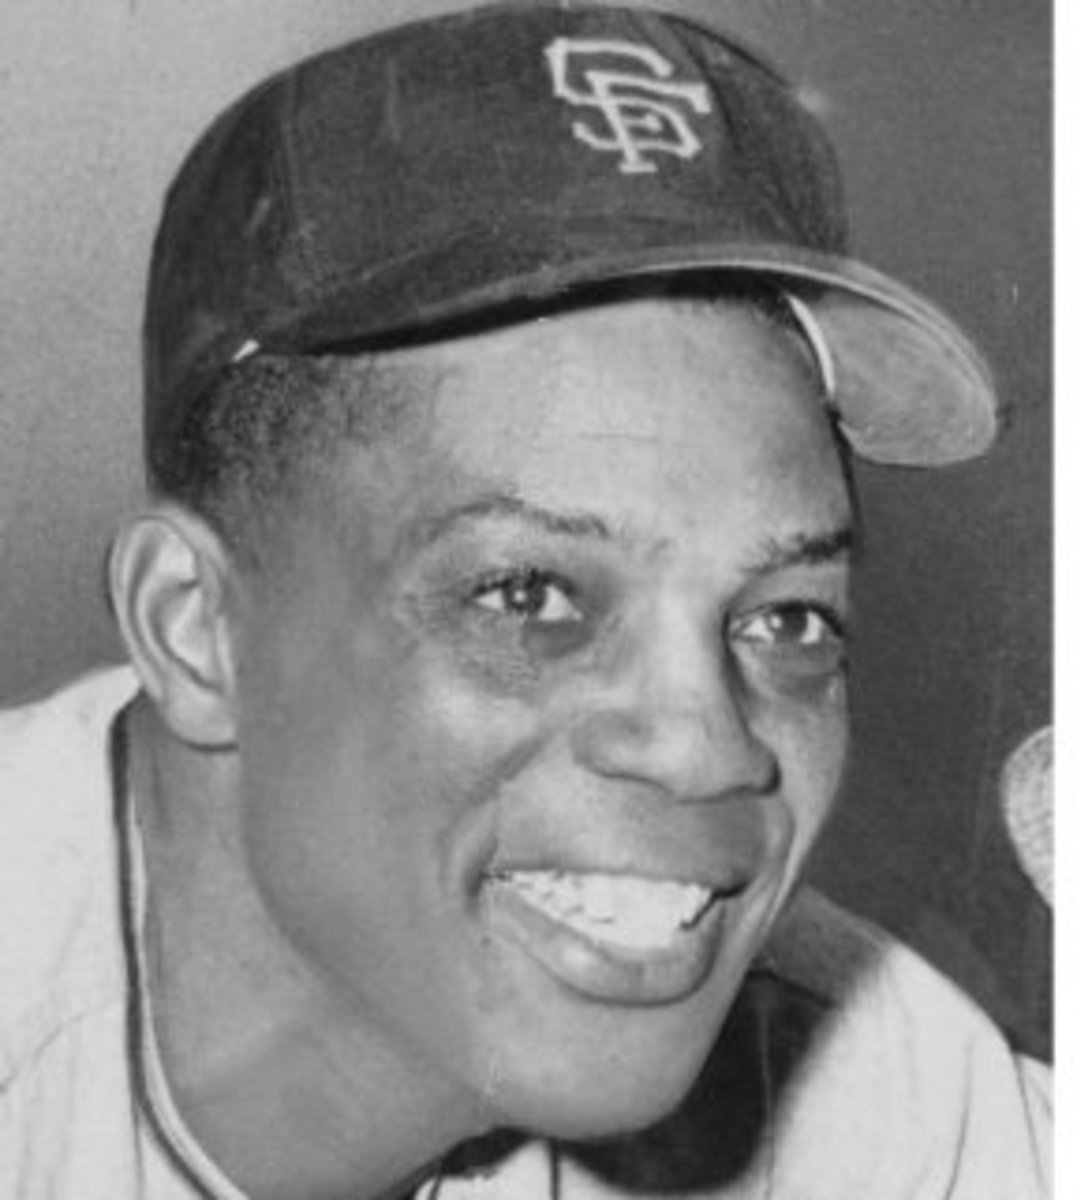 Willie Mays was one of the greatest power hitters to ever play the game of baseball.